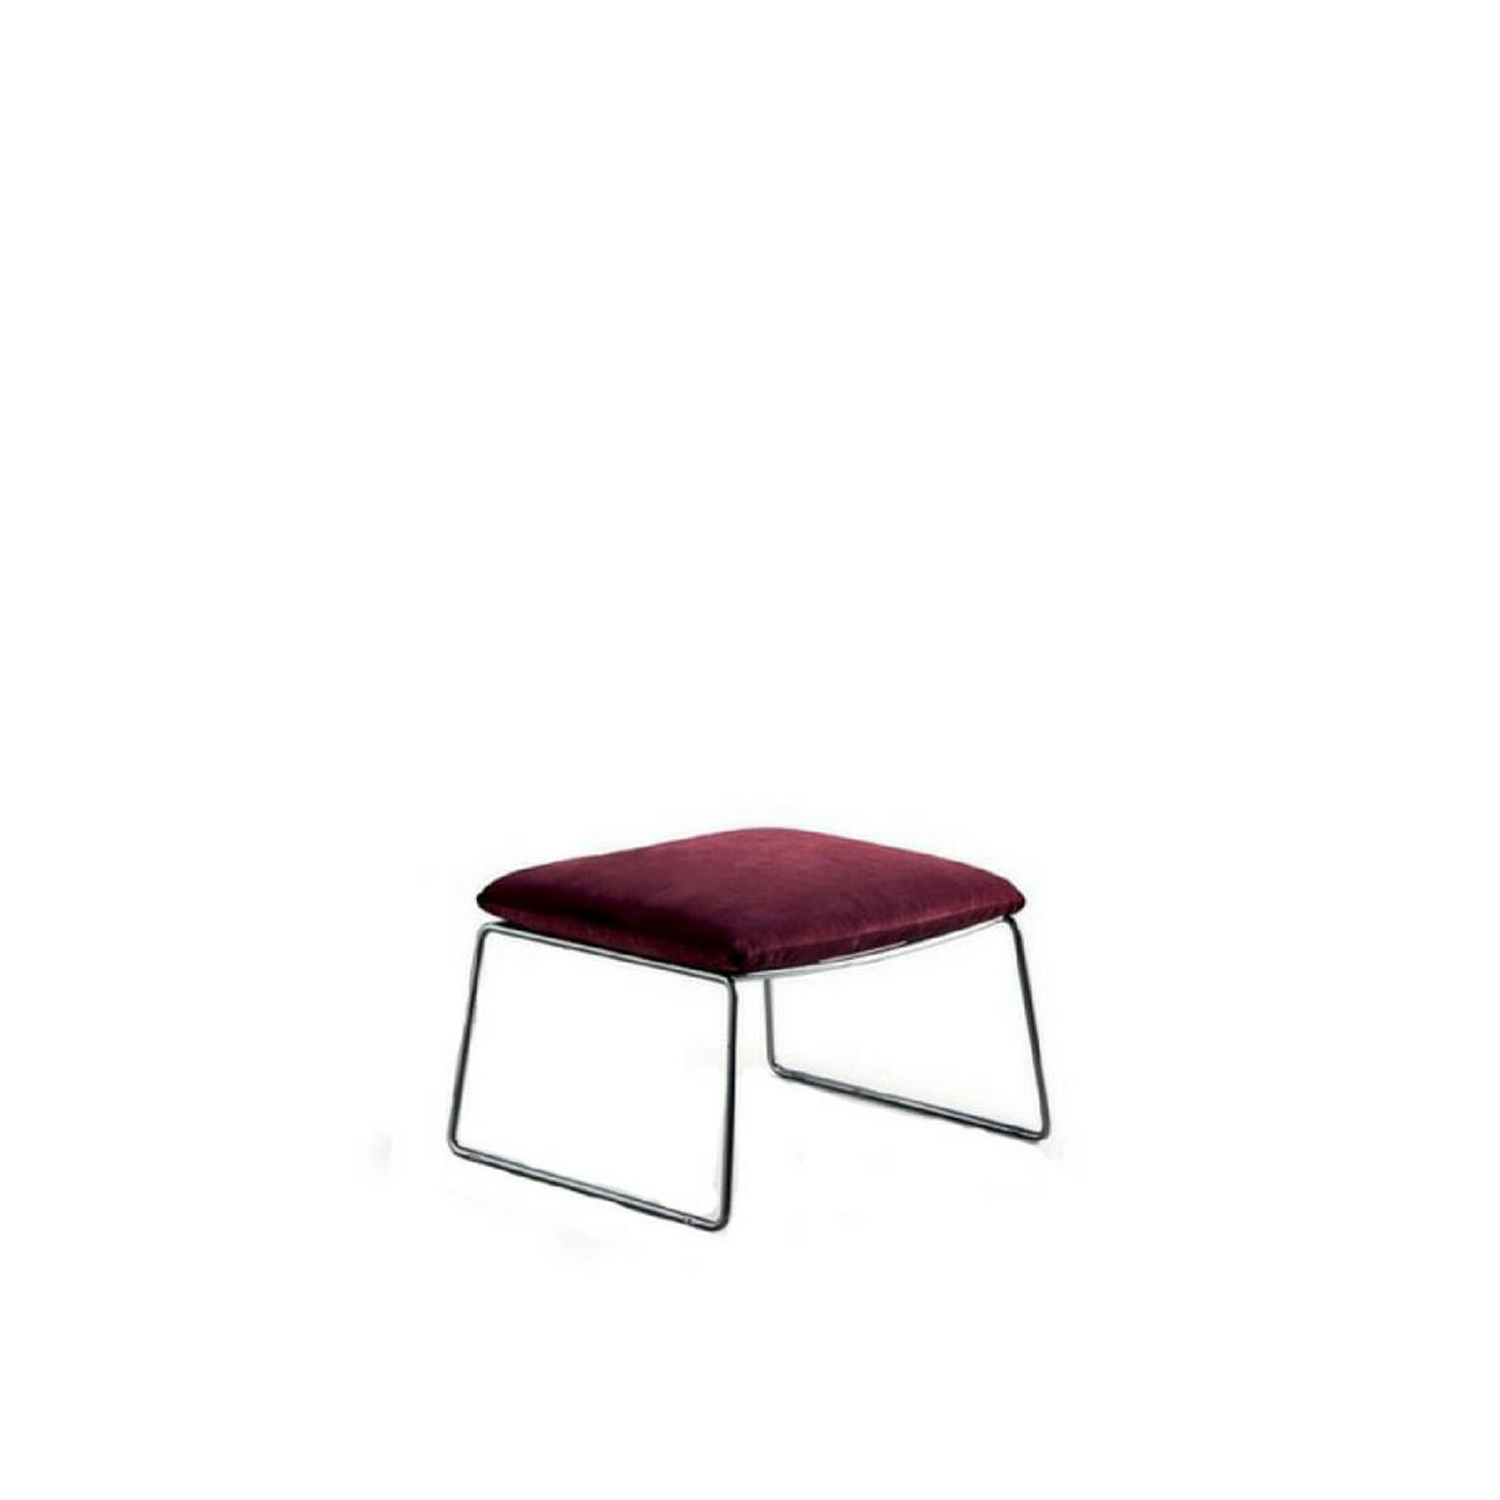 New York Bergère Pouf - The same frame as the New York armchair boasts the comfortable upholstery of the bergère. The classic function of the armchair for reading or relaxing is ensured by the height of the back, the comfortable headrest and the elegant pouf. An unbroken link with tradition interpreted in a contemporary style with a sophisticated lightness. Fully removable covers.  Additional removable cover is available, please enquire for prices.  Materials Structure in 12 mm wire drawn. The seat is in perforated sheet metal. Chrome or painted finish. Inner pad and seat cuchion are in 50IP polyurethane foam; back and headrest cuchions are paded with 21IM and 25IM polyurethane foam. All is covered with white cotton fabric on 380gr/sqm polyester fiber. | Matter of Stuff